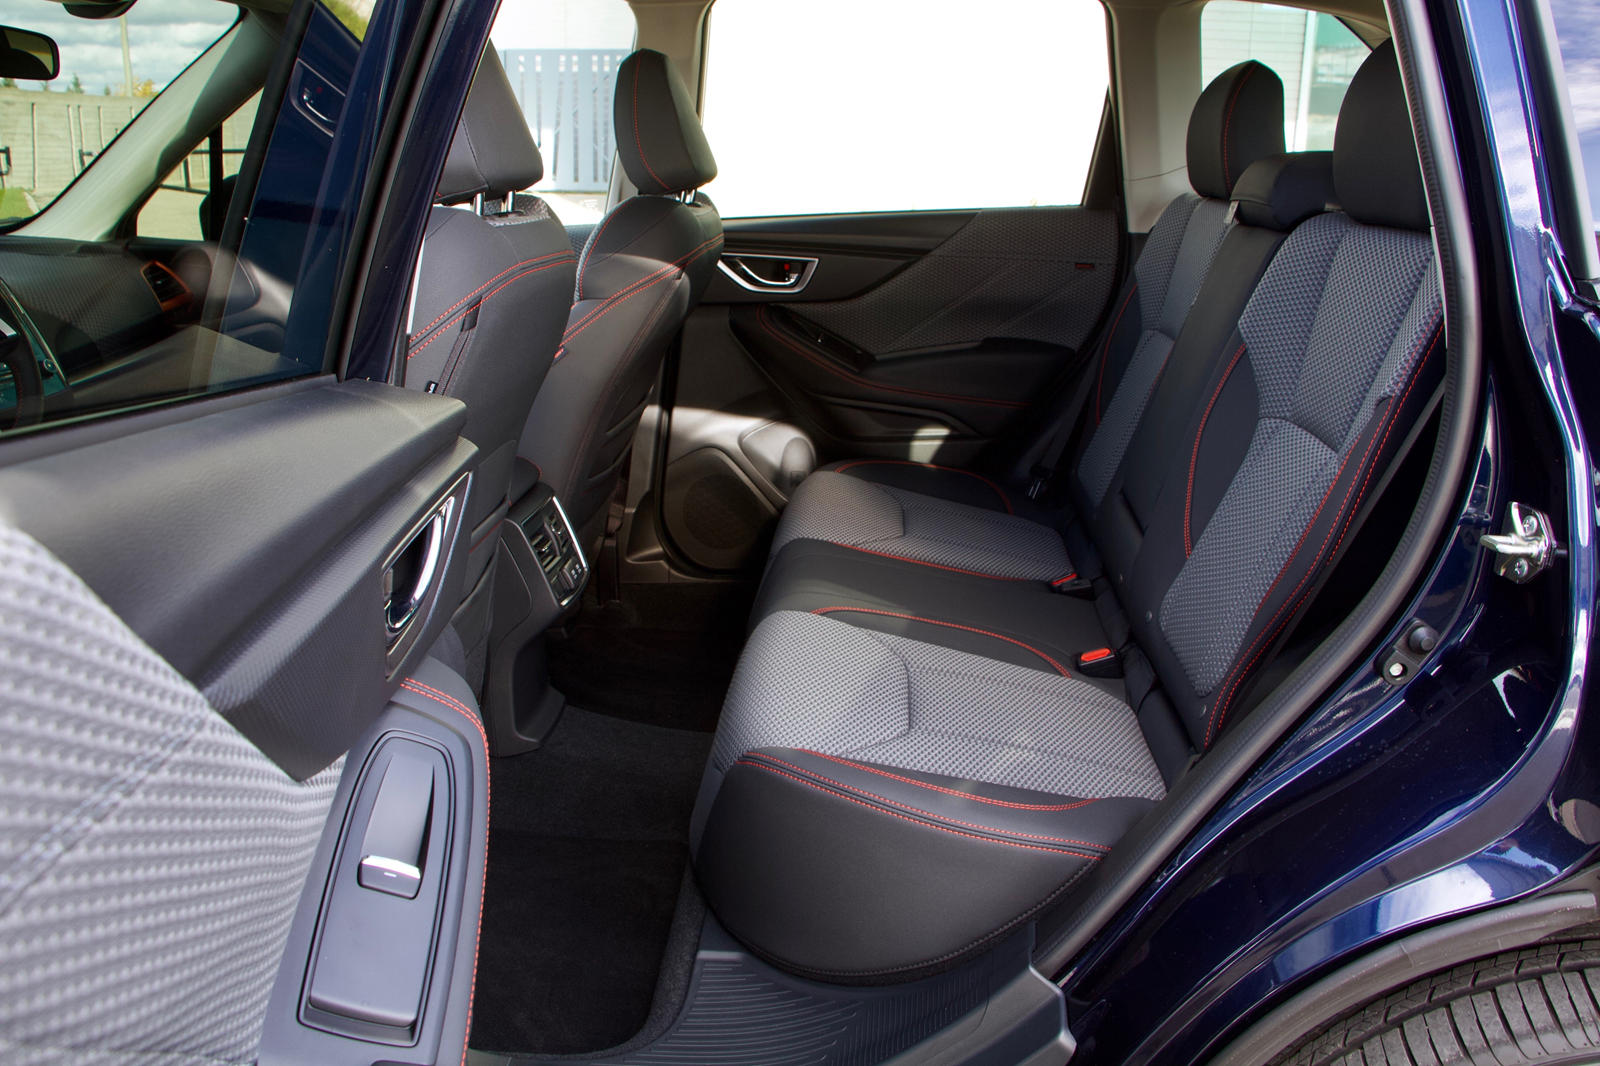 020 Subaru Forester Crossover rear seat